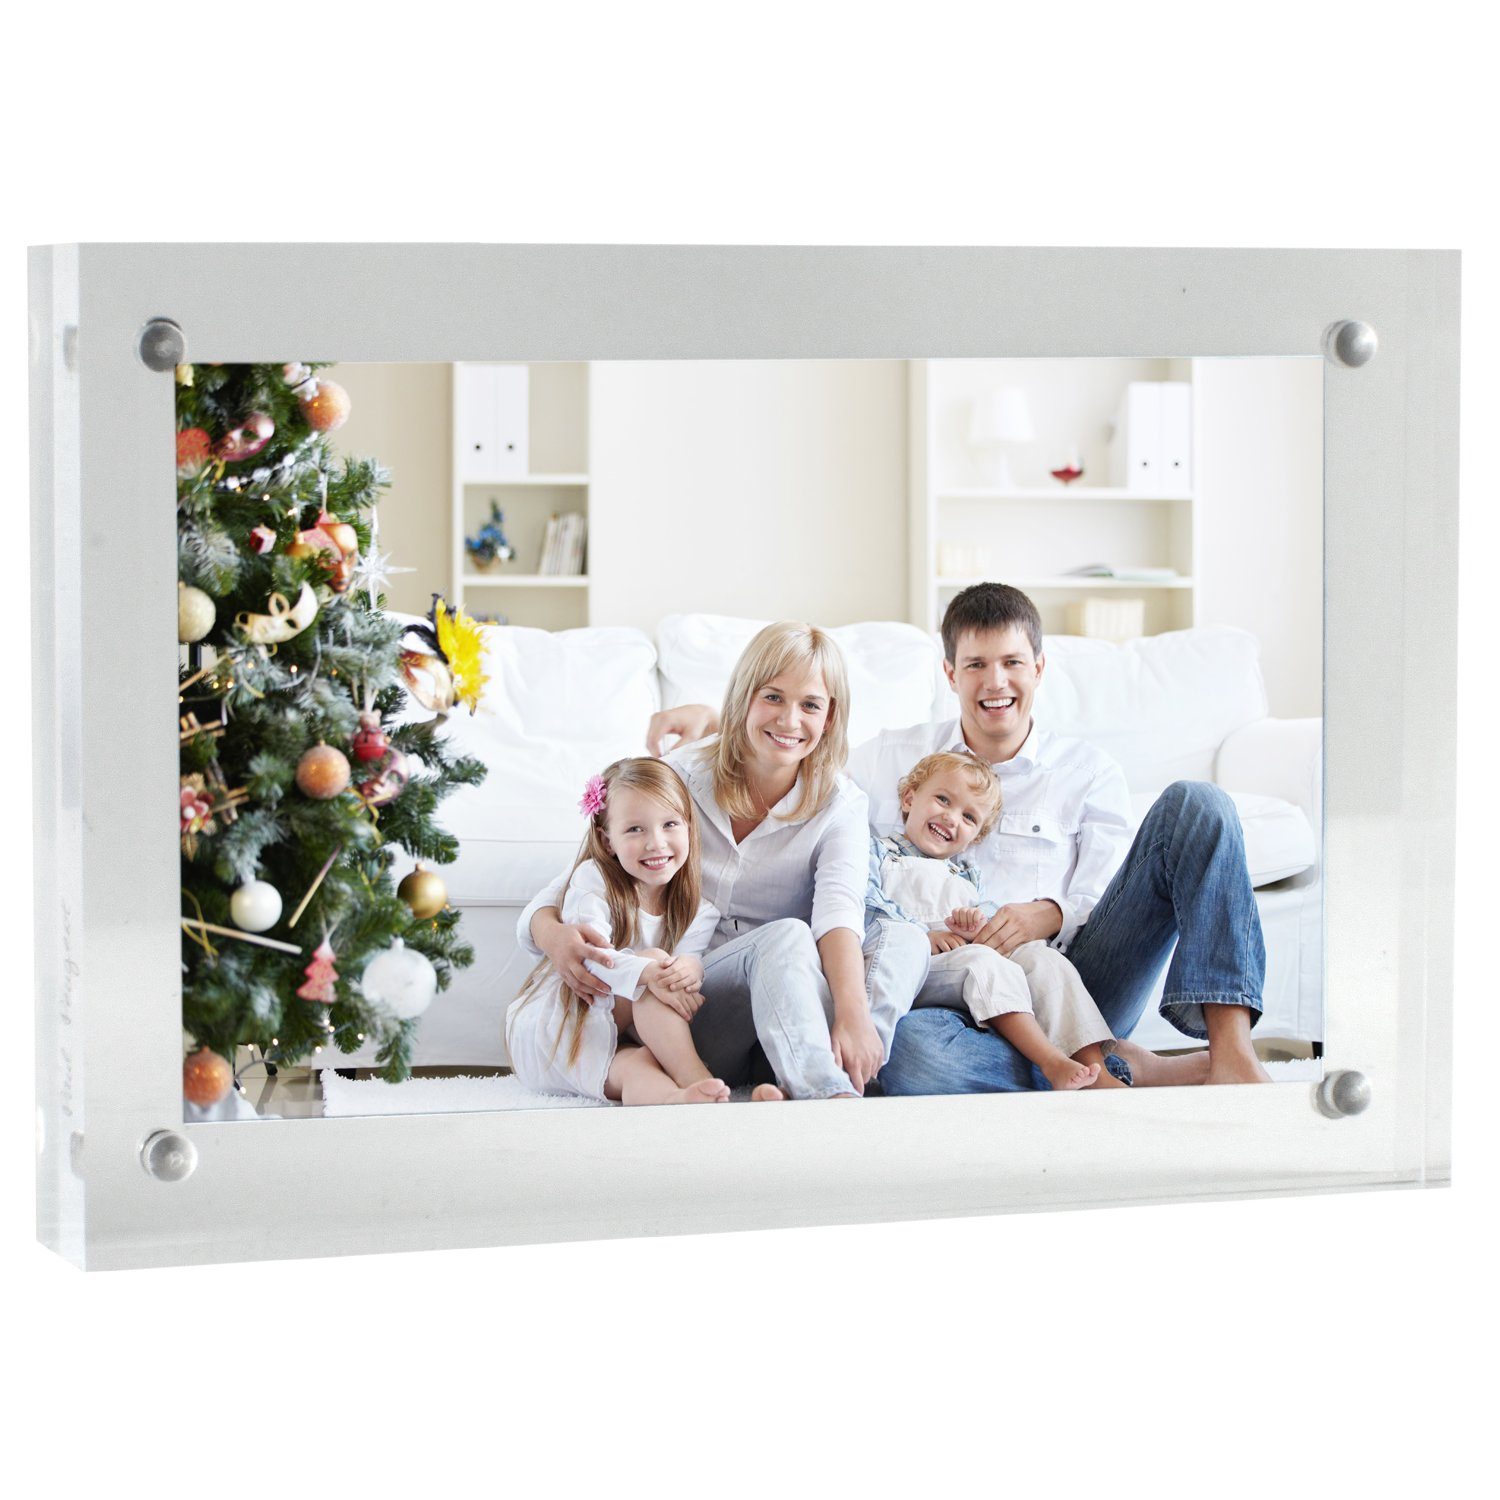 Peugeot Paul Premium Quality 5x7 Acrylic Picture Frame with 4 Corner Magnetic Magnet Lock Closure, Ultra Thick, 24mm Total Thickness